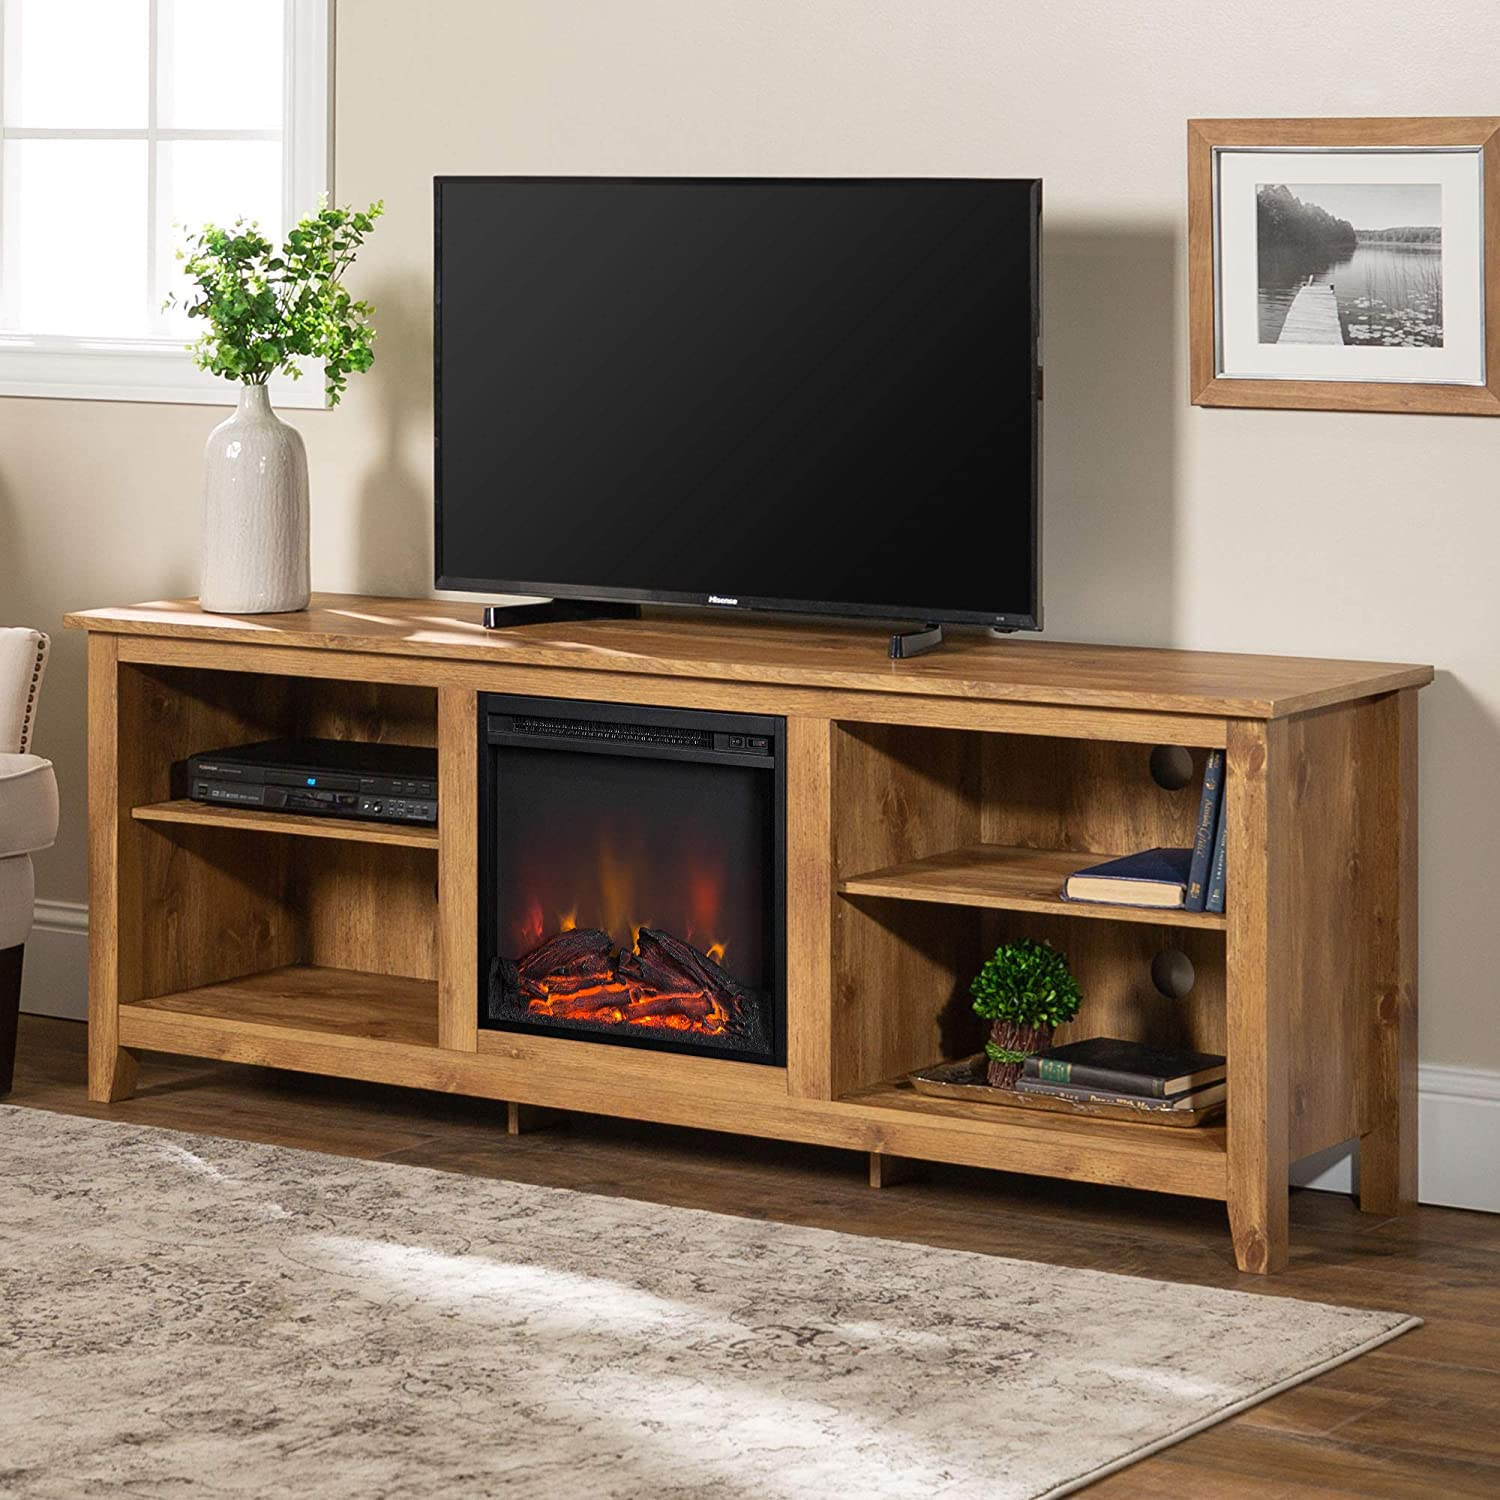 Walker Edison 70 inche Fireplace TV Stand with Storage Shelves